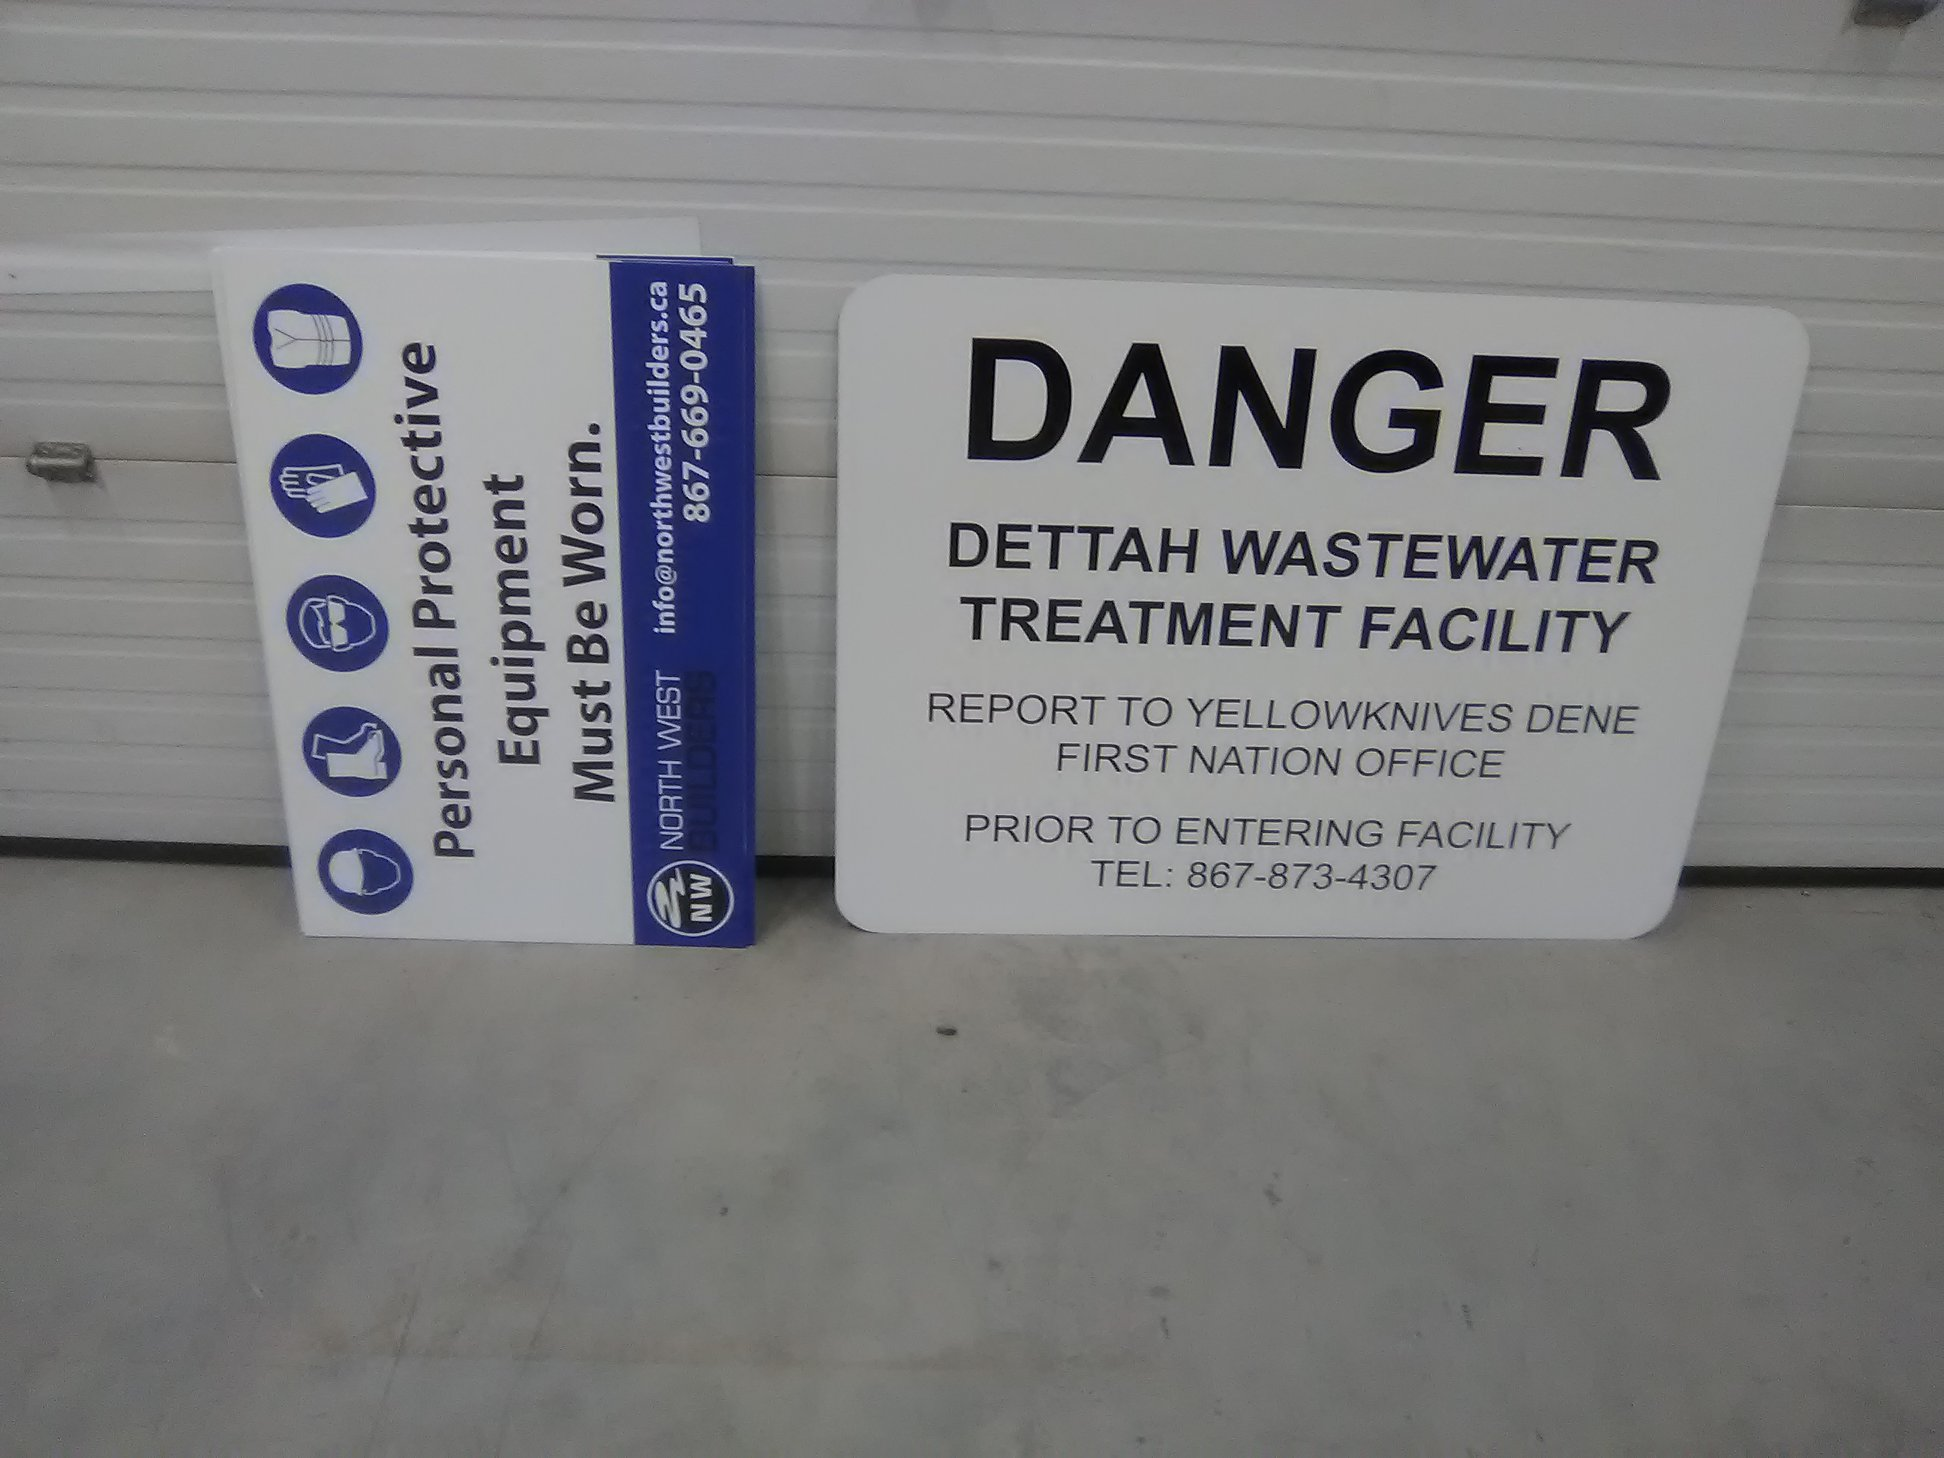 Dettah Wastewater Treatment Facility